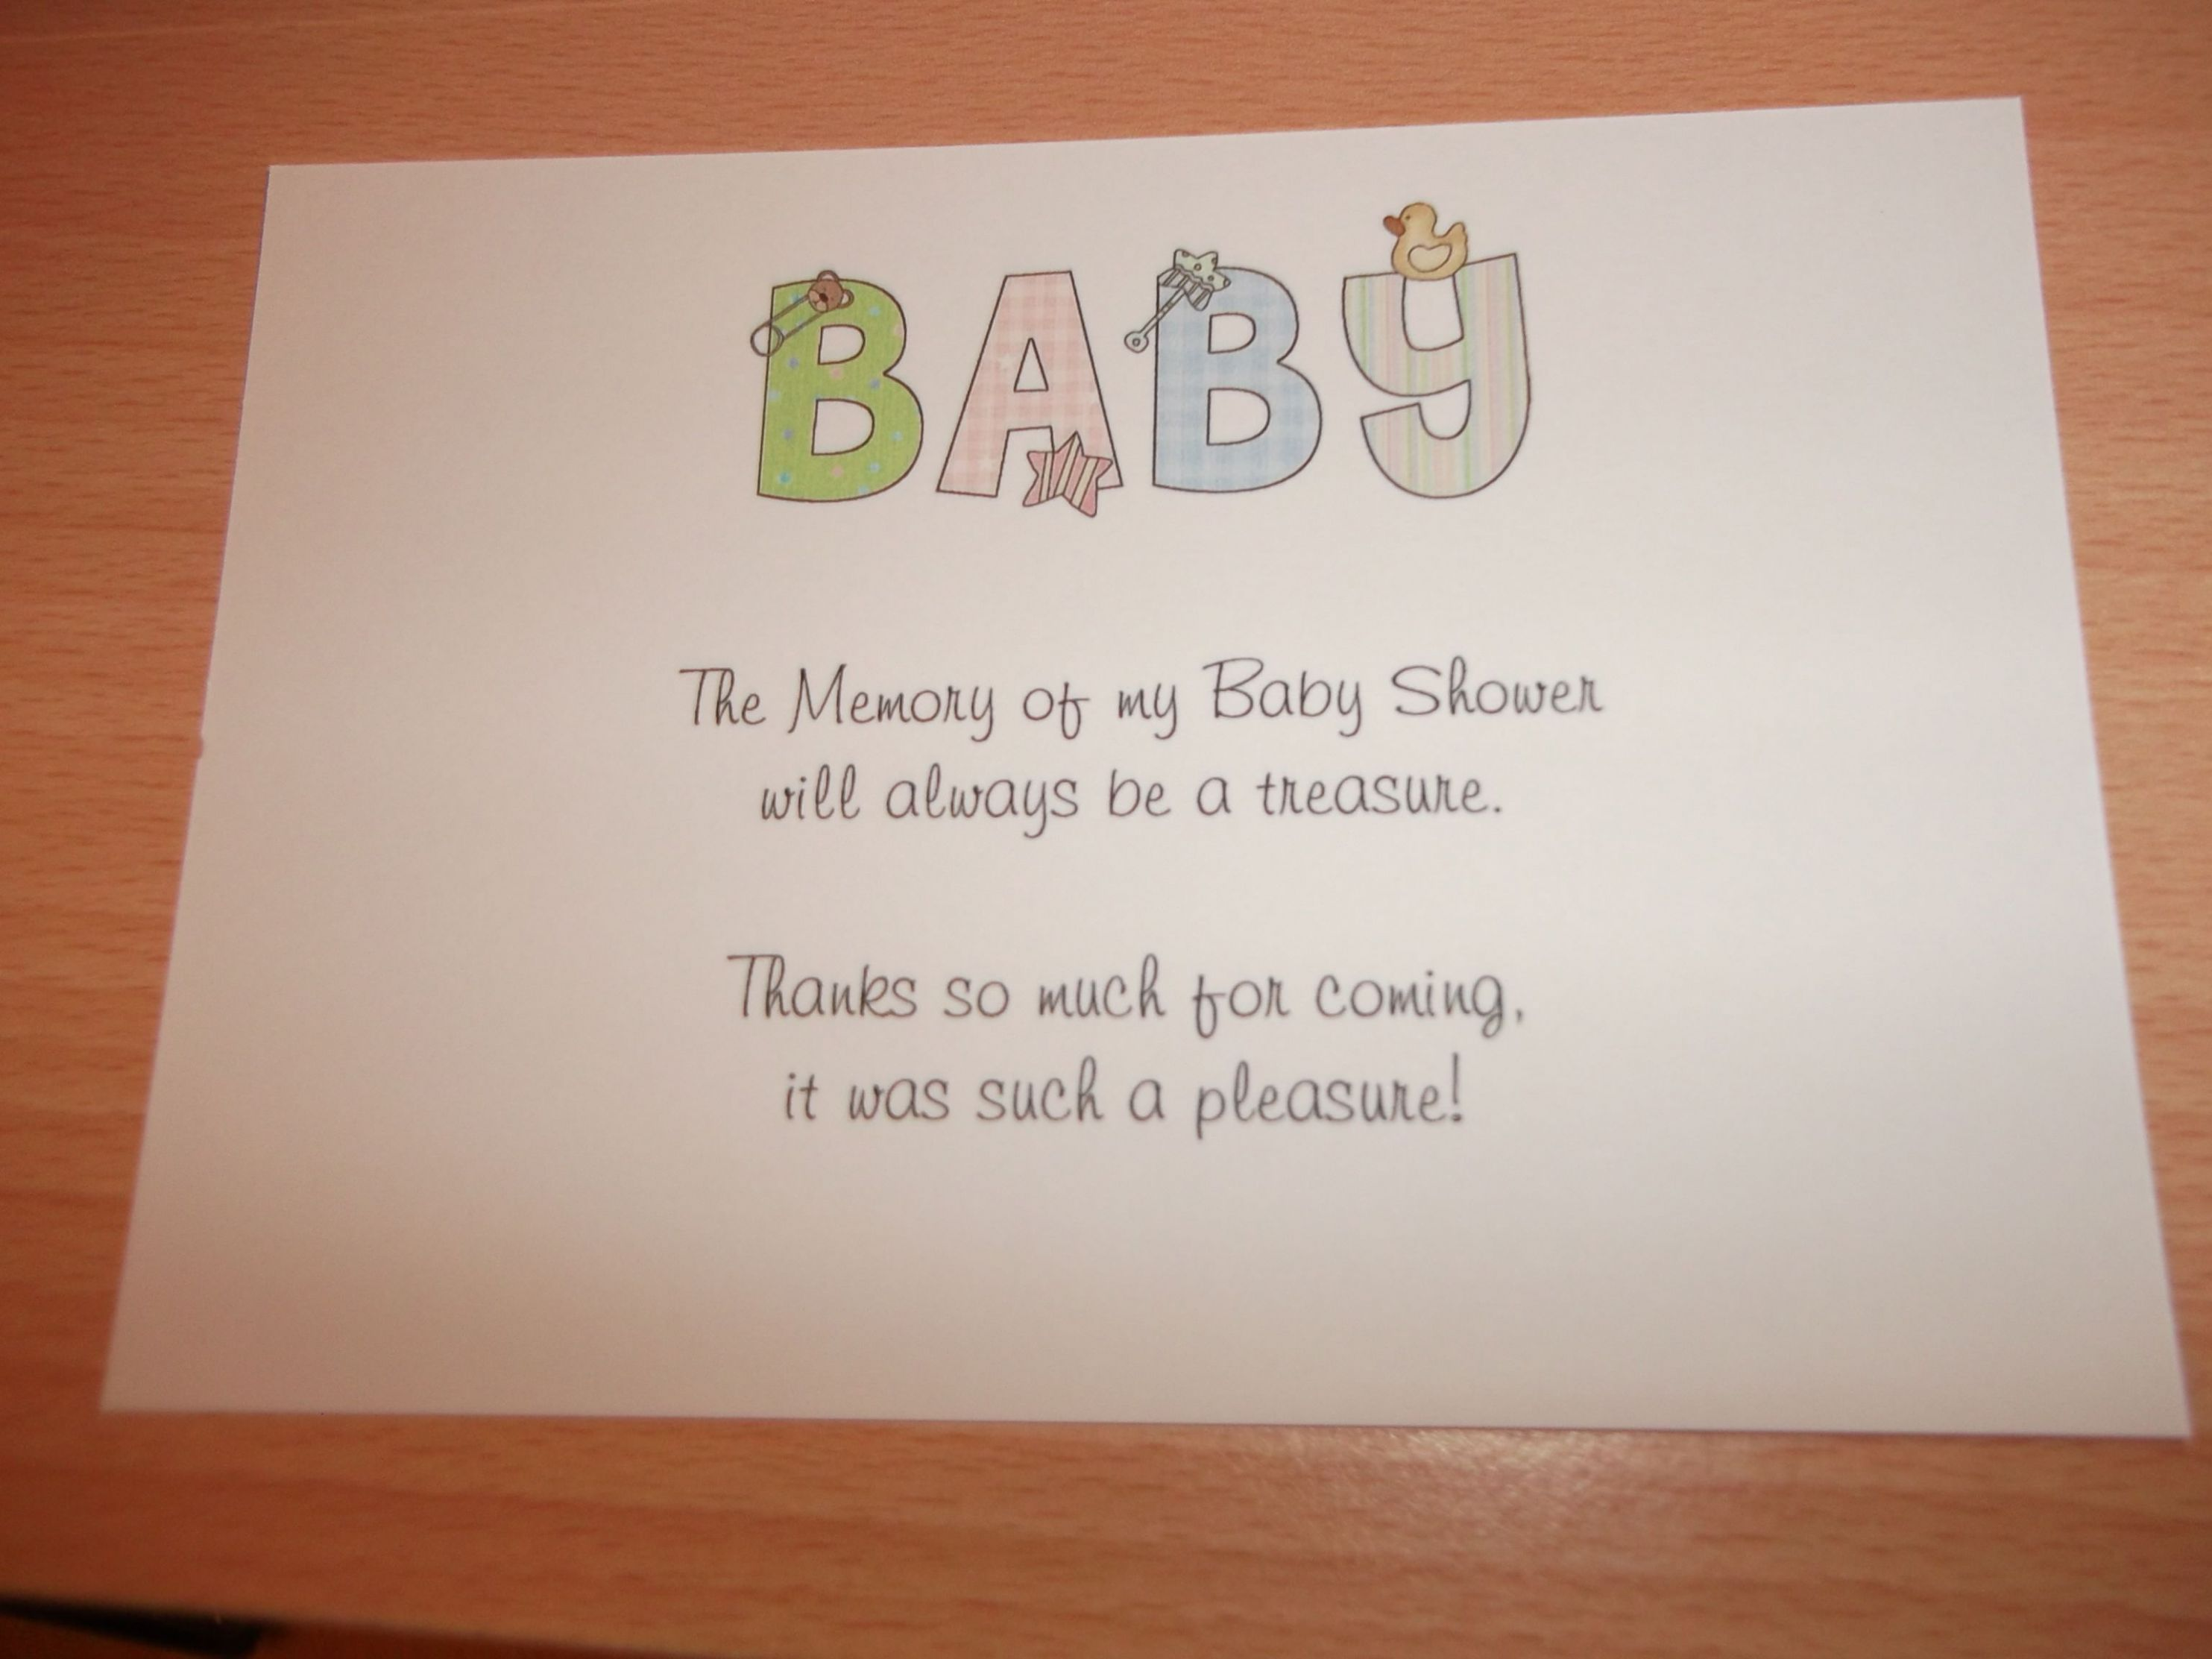 Baby shower gift message ideas